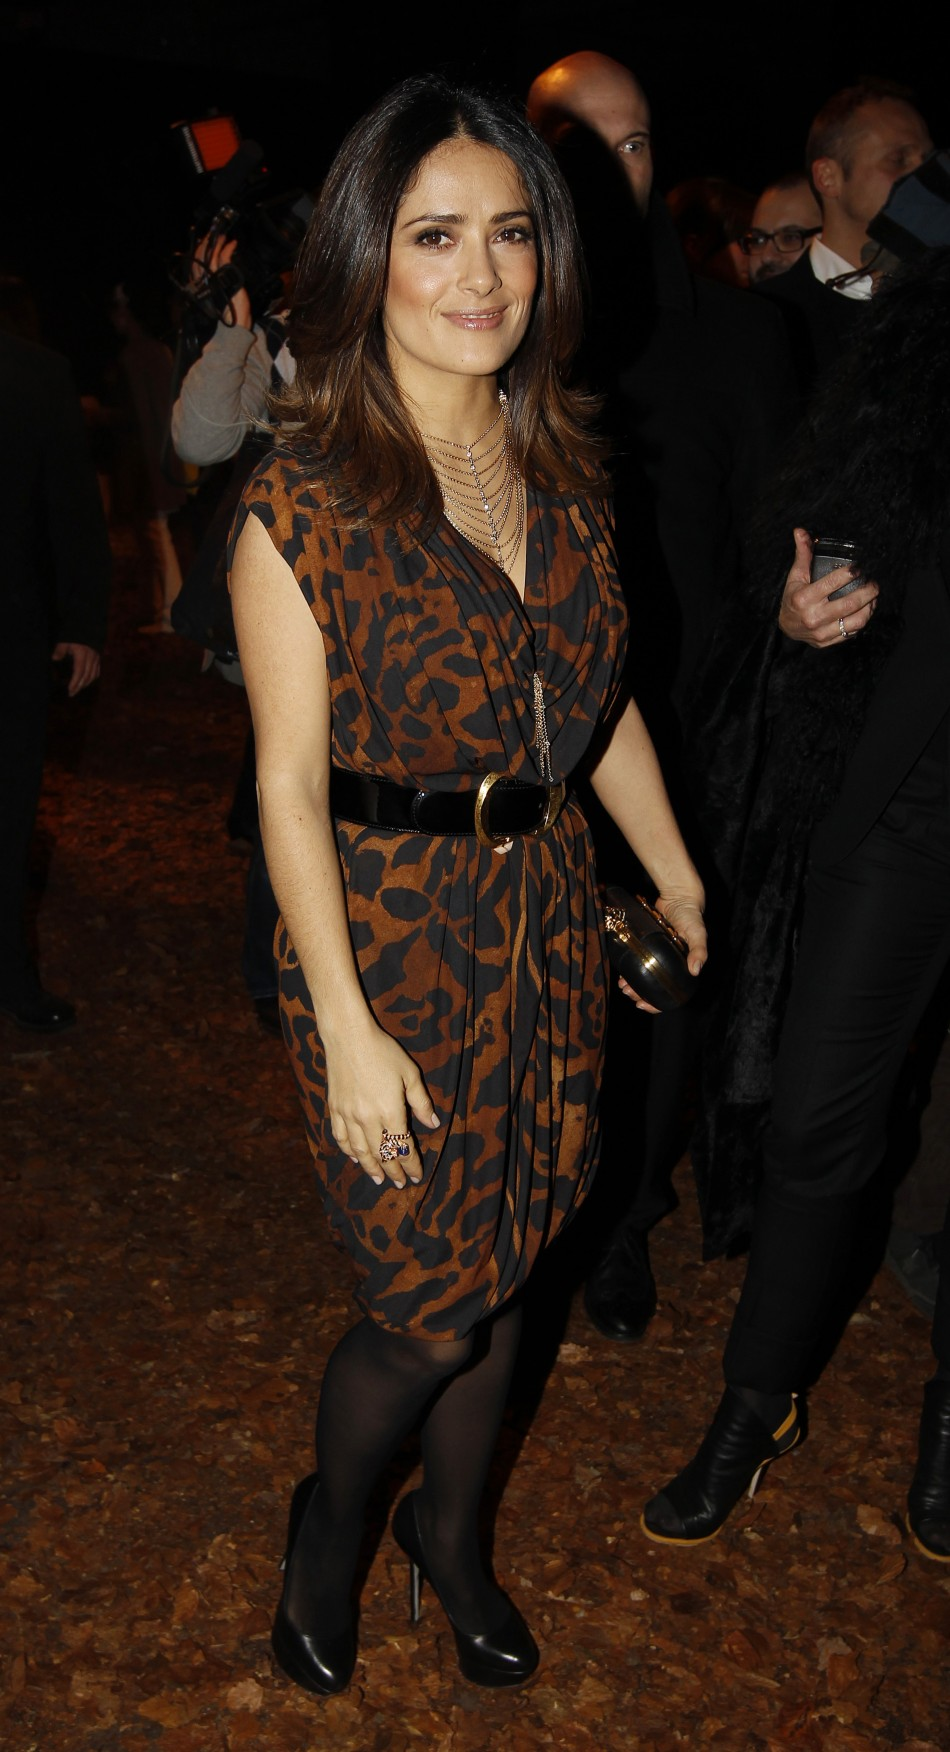 Lfw Mcqueen Unveils New Collection Salma Hayek Stuns In